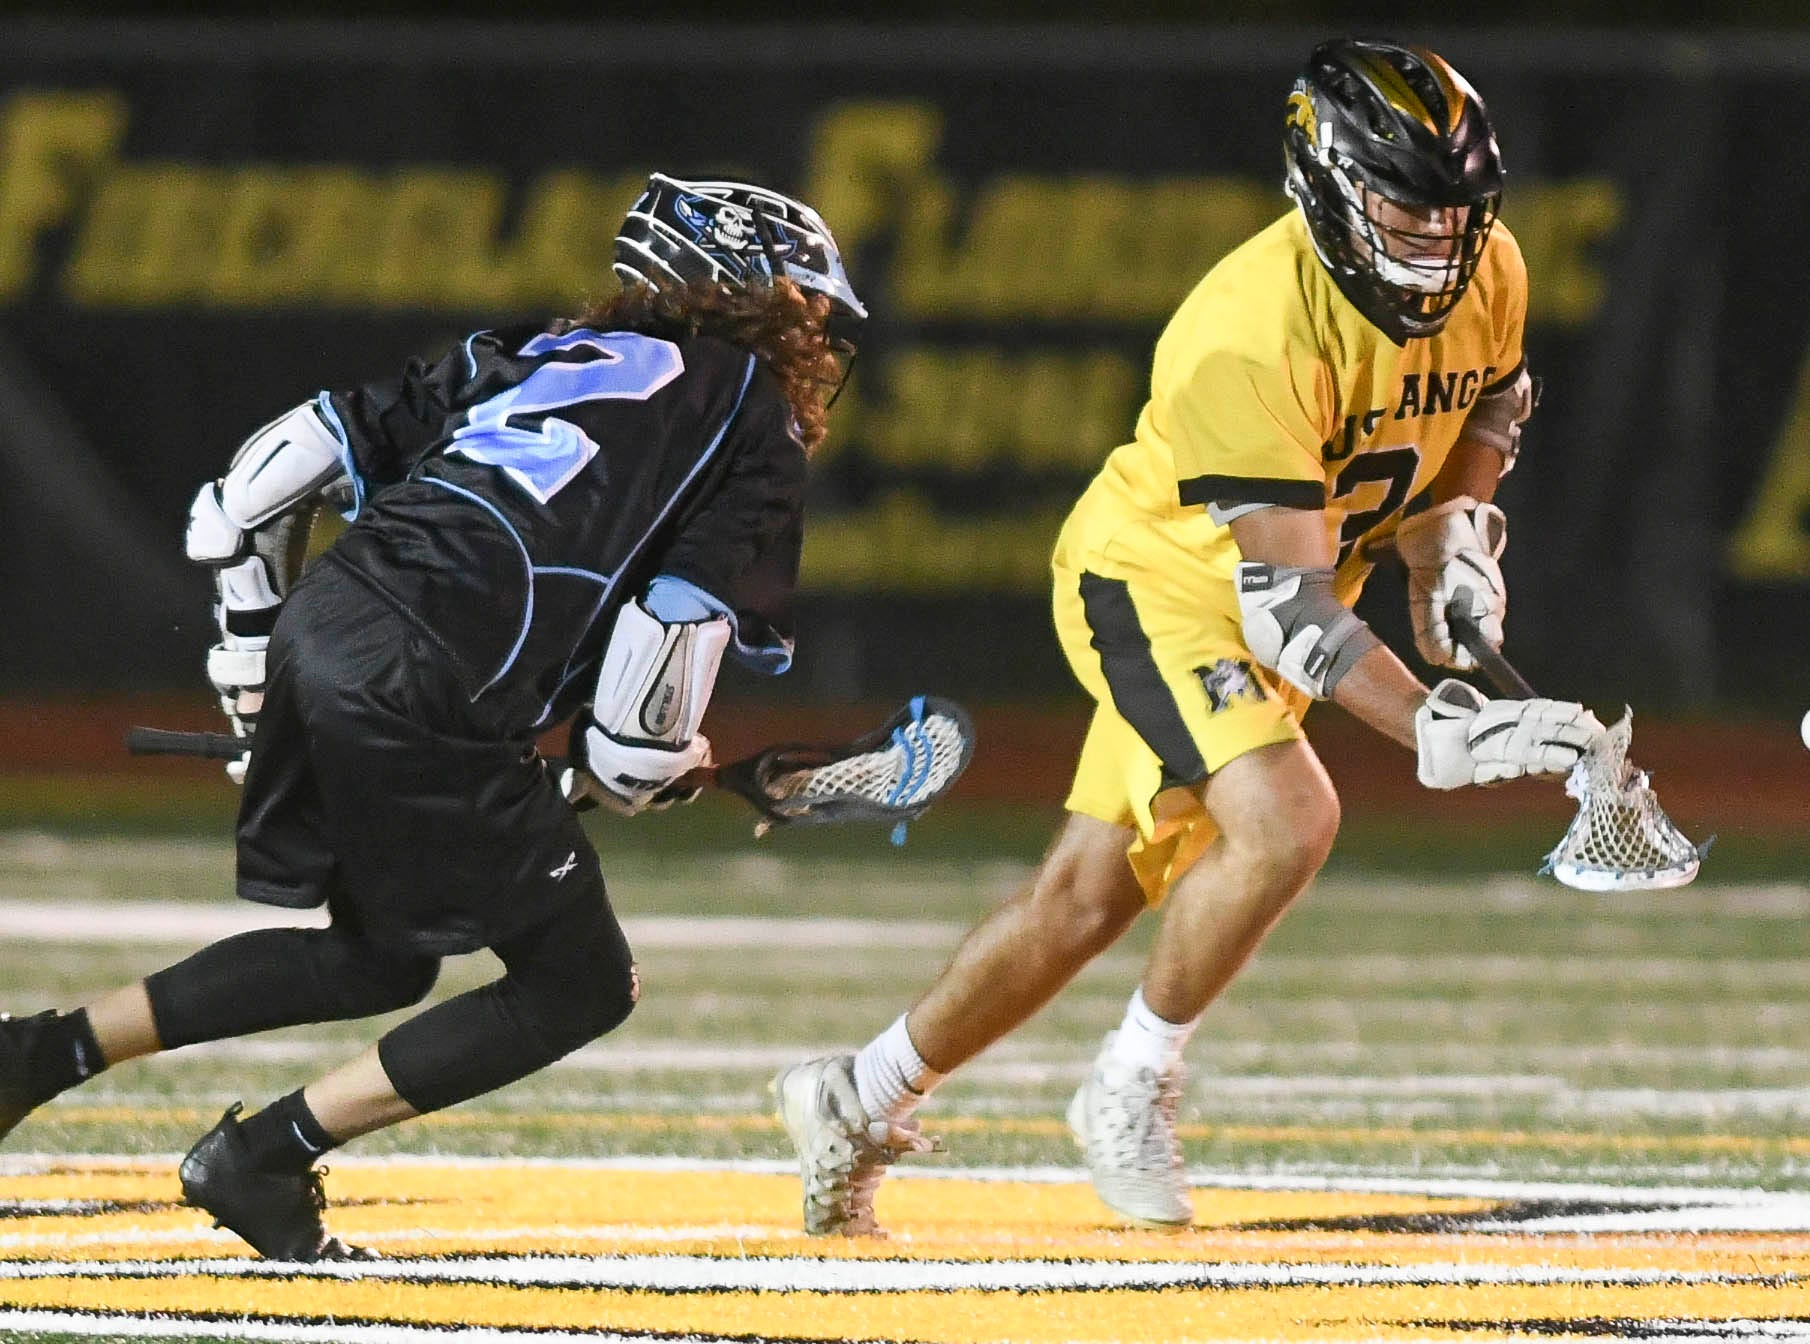 Cade Madonna of Rockledge and Nick Sidor of Merritt Island chase the ball during Wednesday's game.